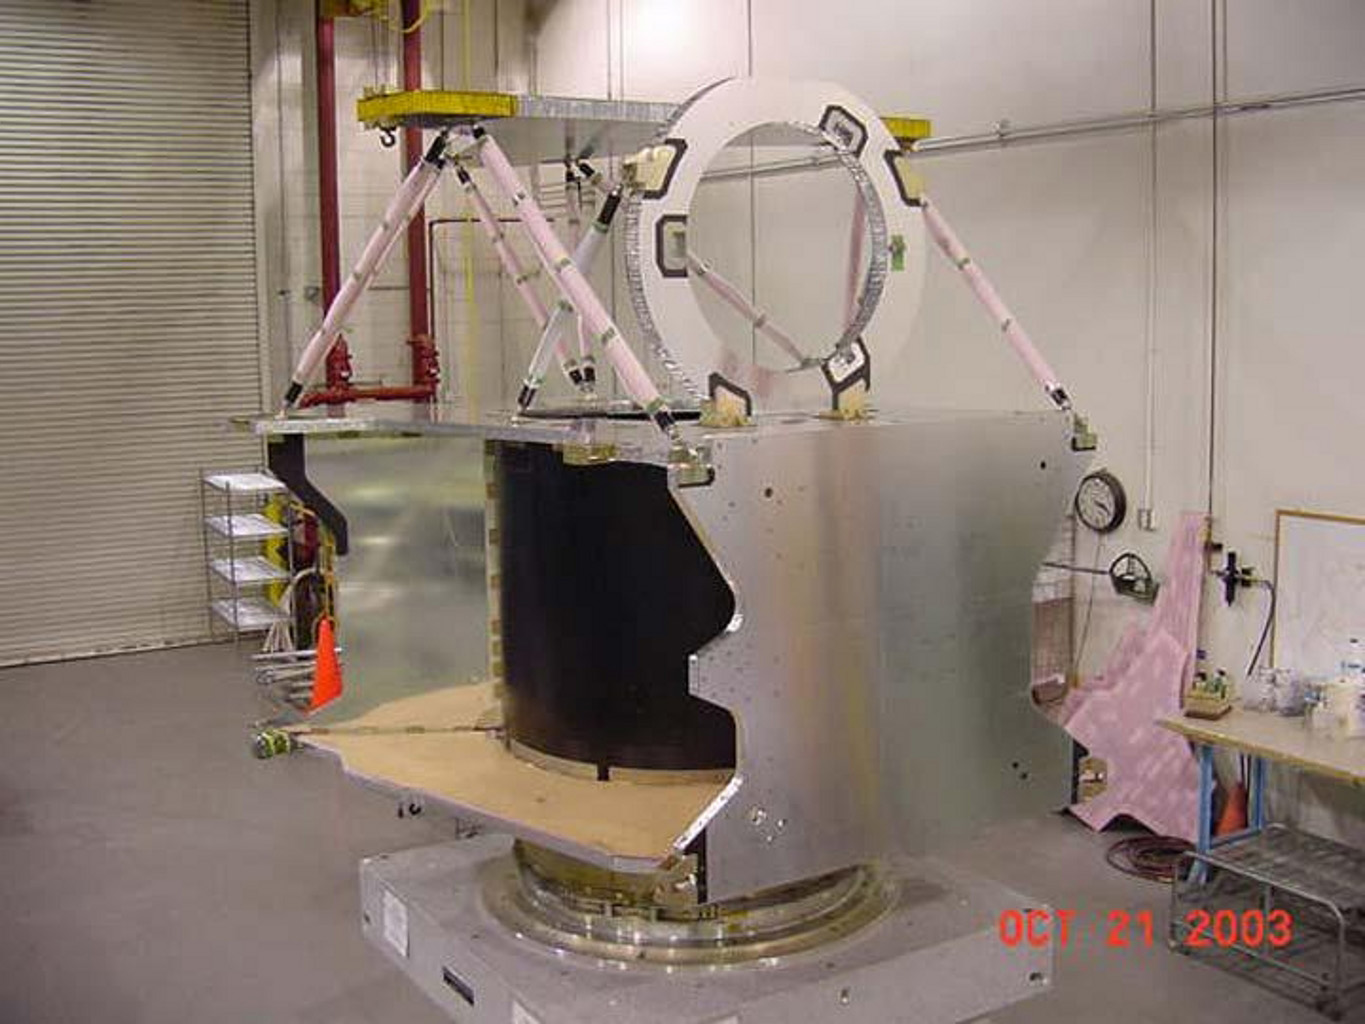 The structure of NASA's Mars Reconnaissance Orbiter spacecraft is constructed from composite panels of carbon layers over aluminum honeycomb, lightweight yet strong.